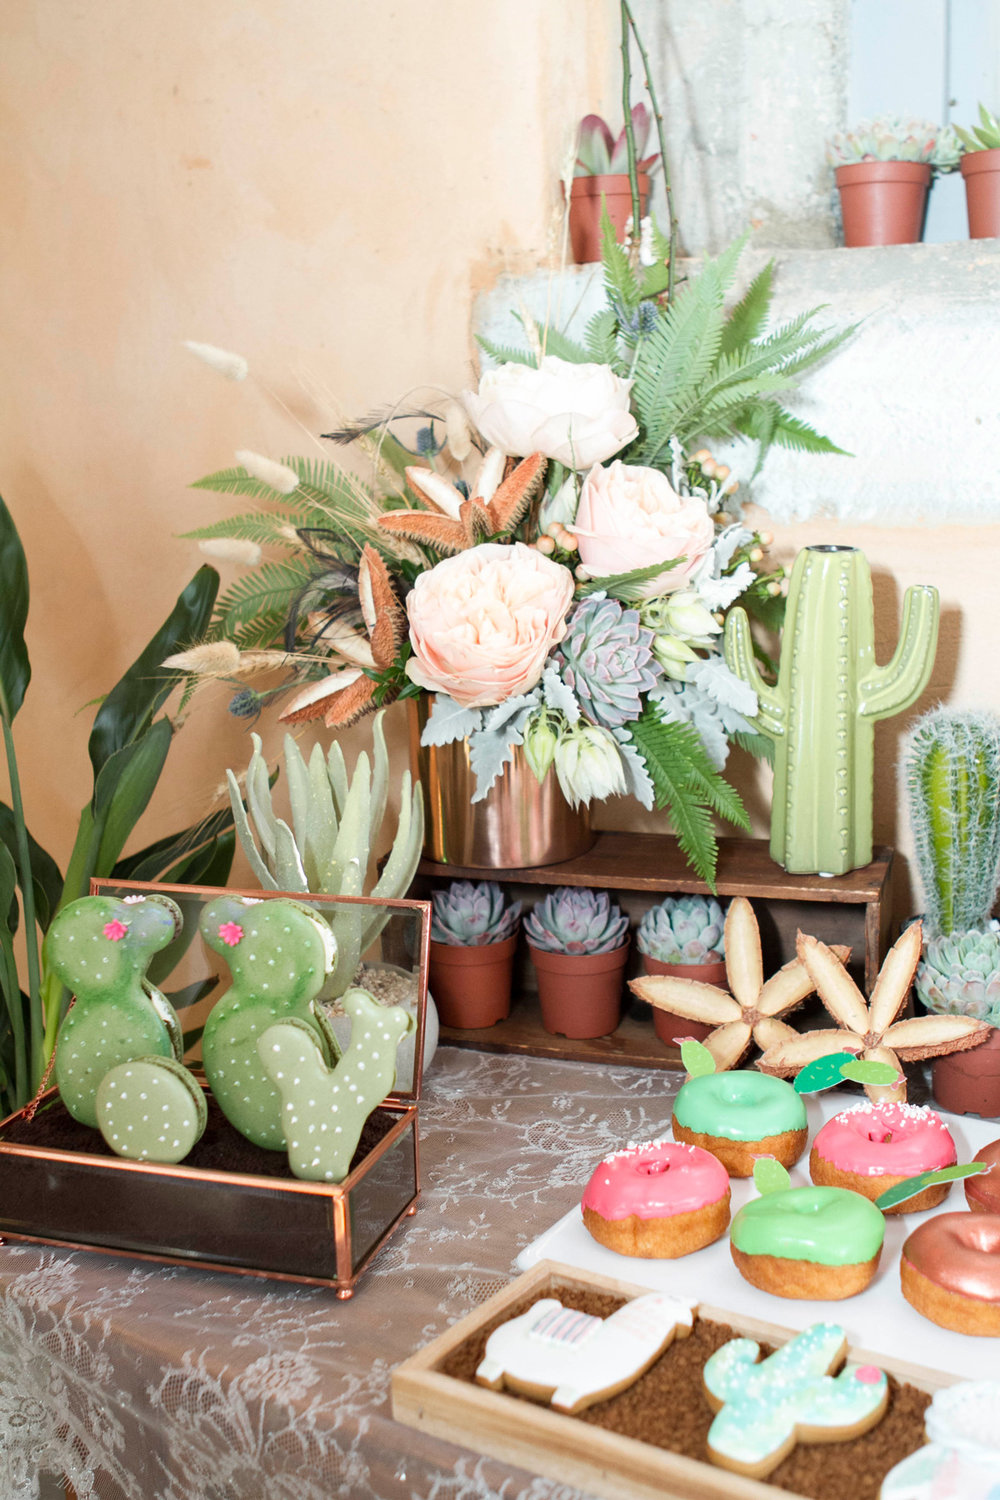 I'm rather in love with the cacti shaped macarons and beautiful decorated cookies